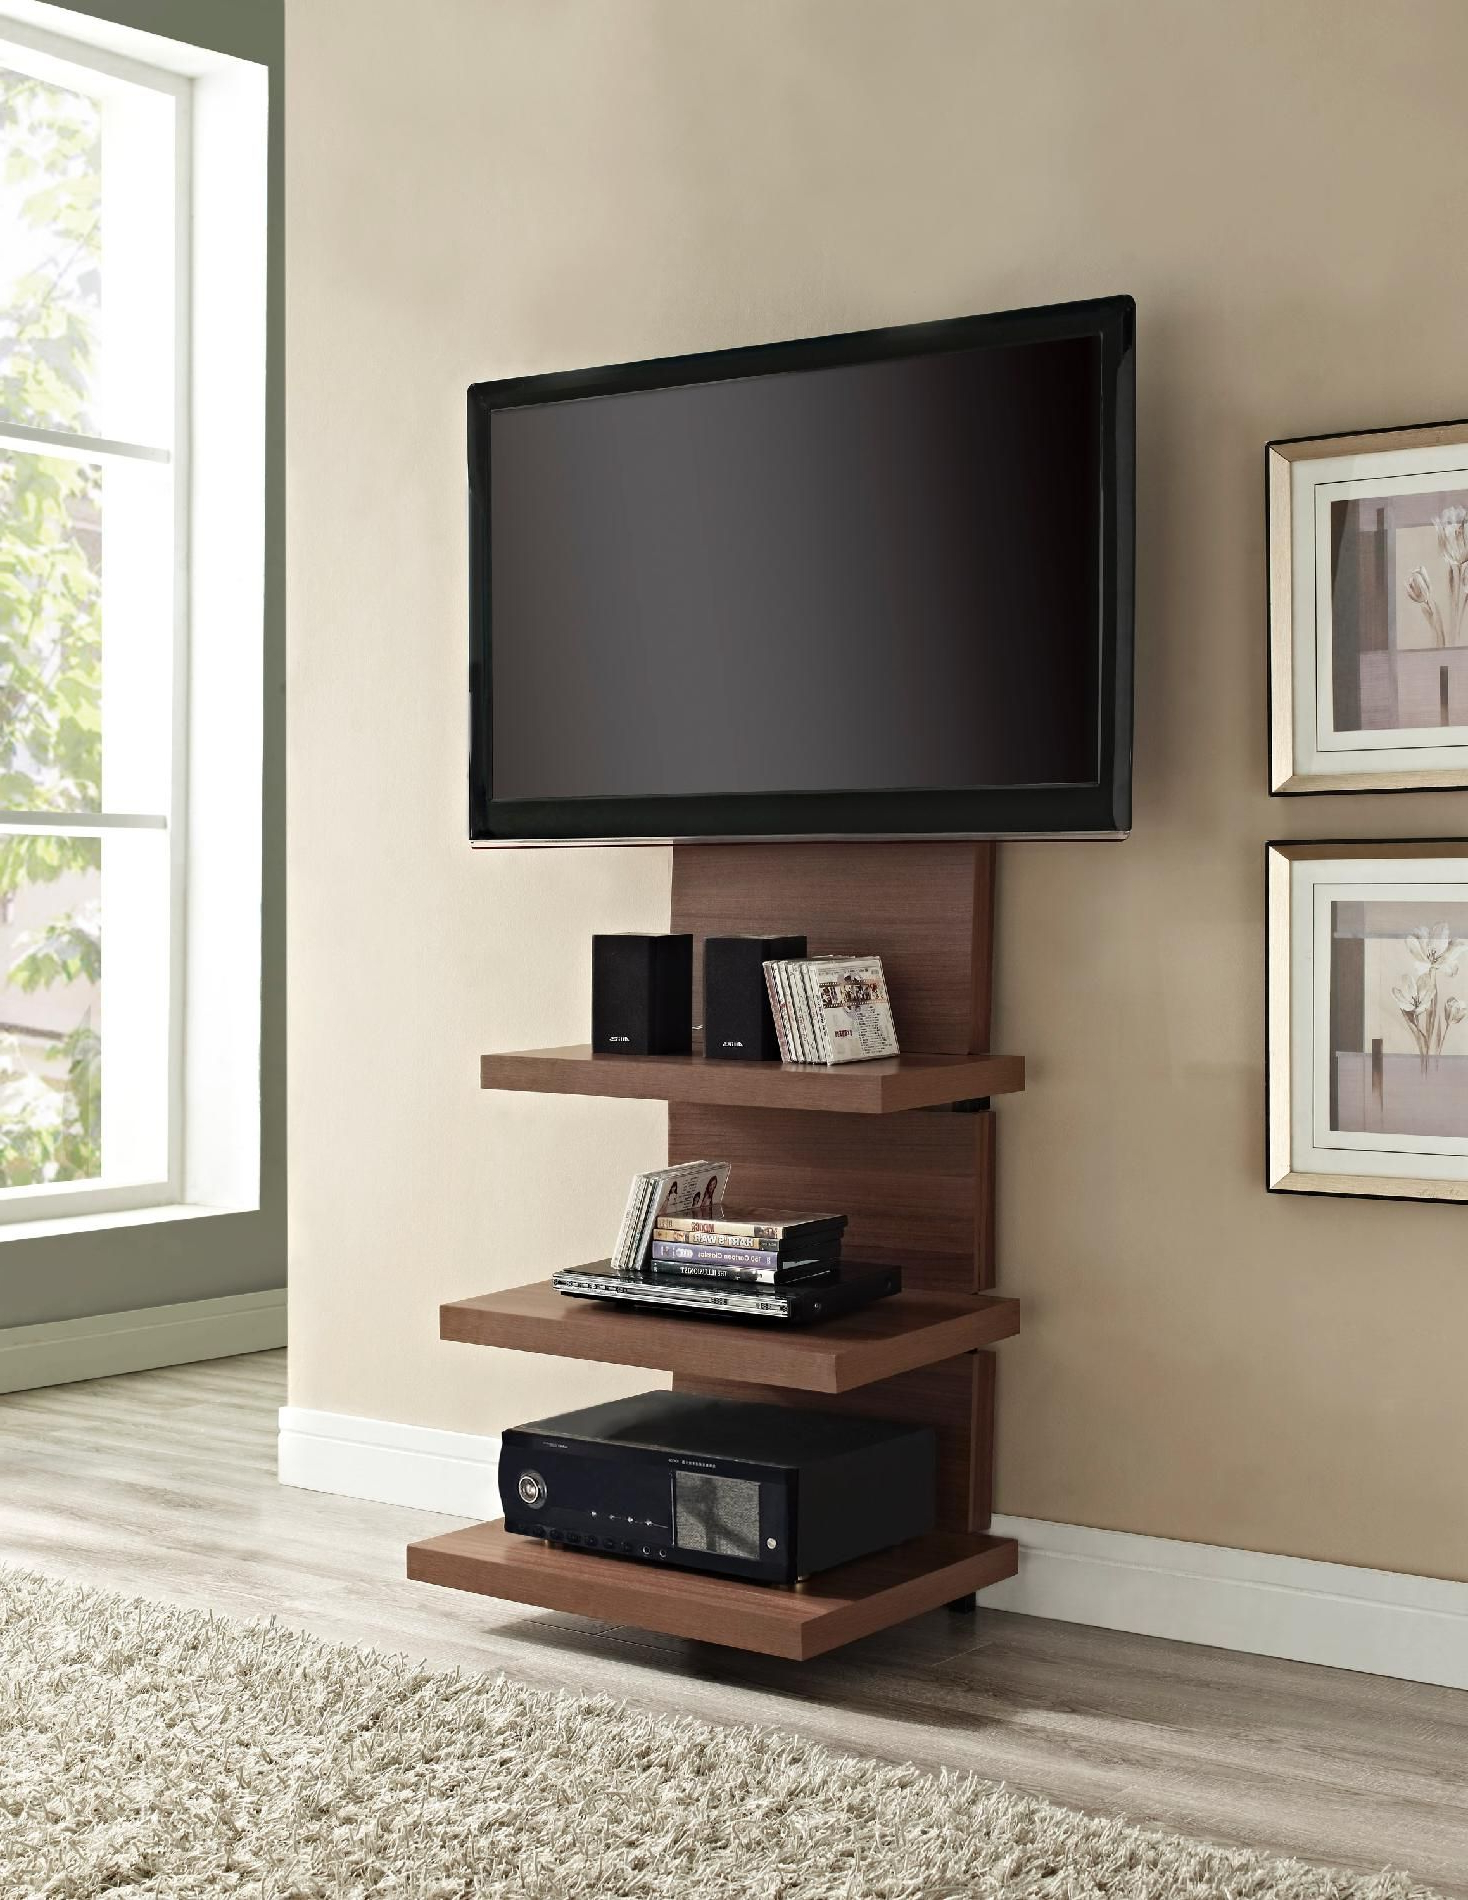 Stylish Tv Cabinets Regarding Famous 18 Chic And Modern Tv Wall Mount Ideas For Living Room (Gallery 6 of 20)